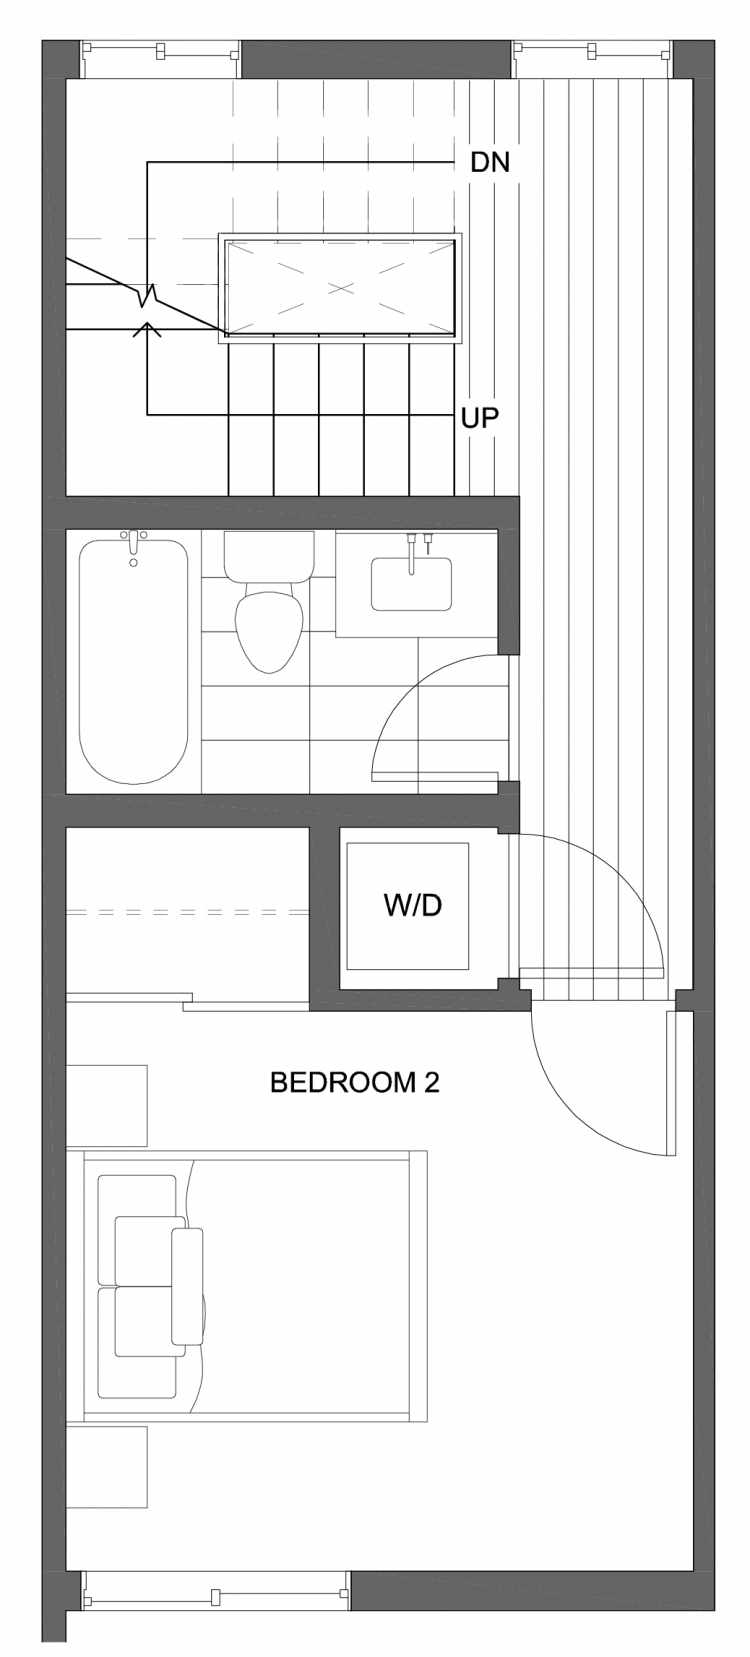 Second Floor Plan of 10429H Alderbrook Pl NW, One of the Jasmine Townhomes in the Greenwood Neighborhood of Seattle